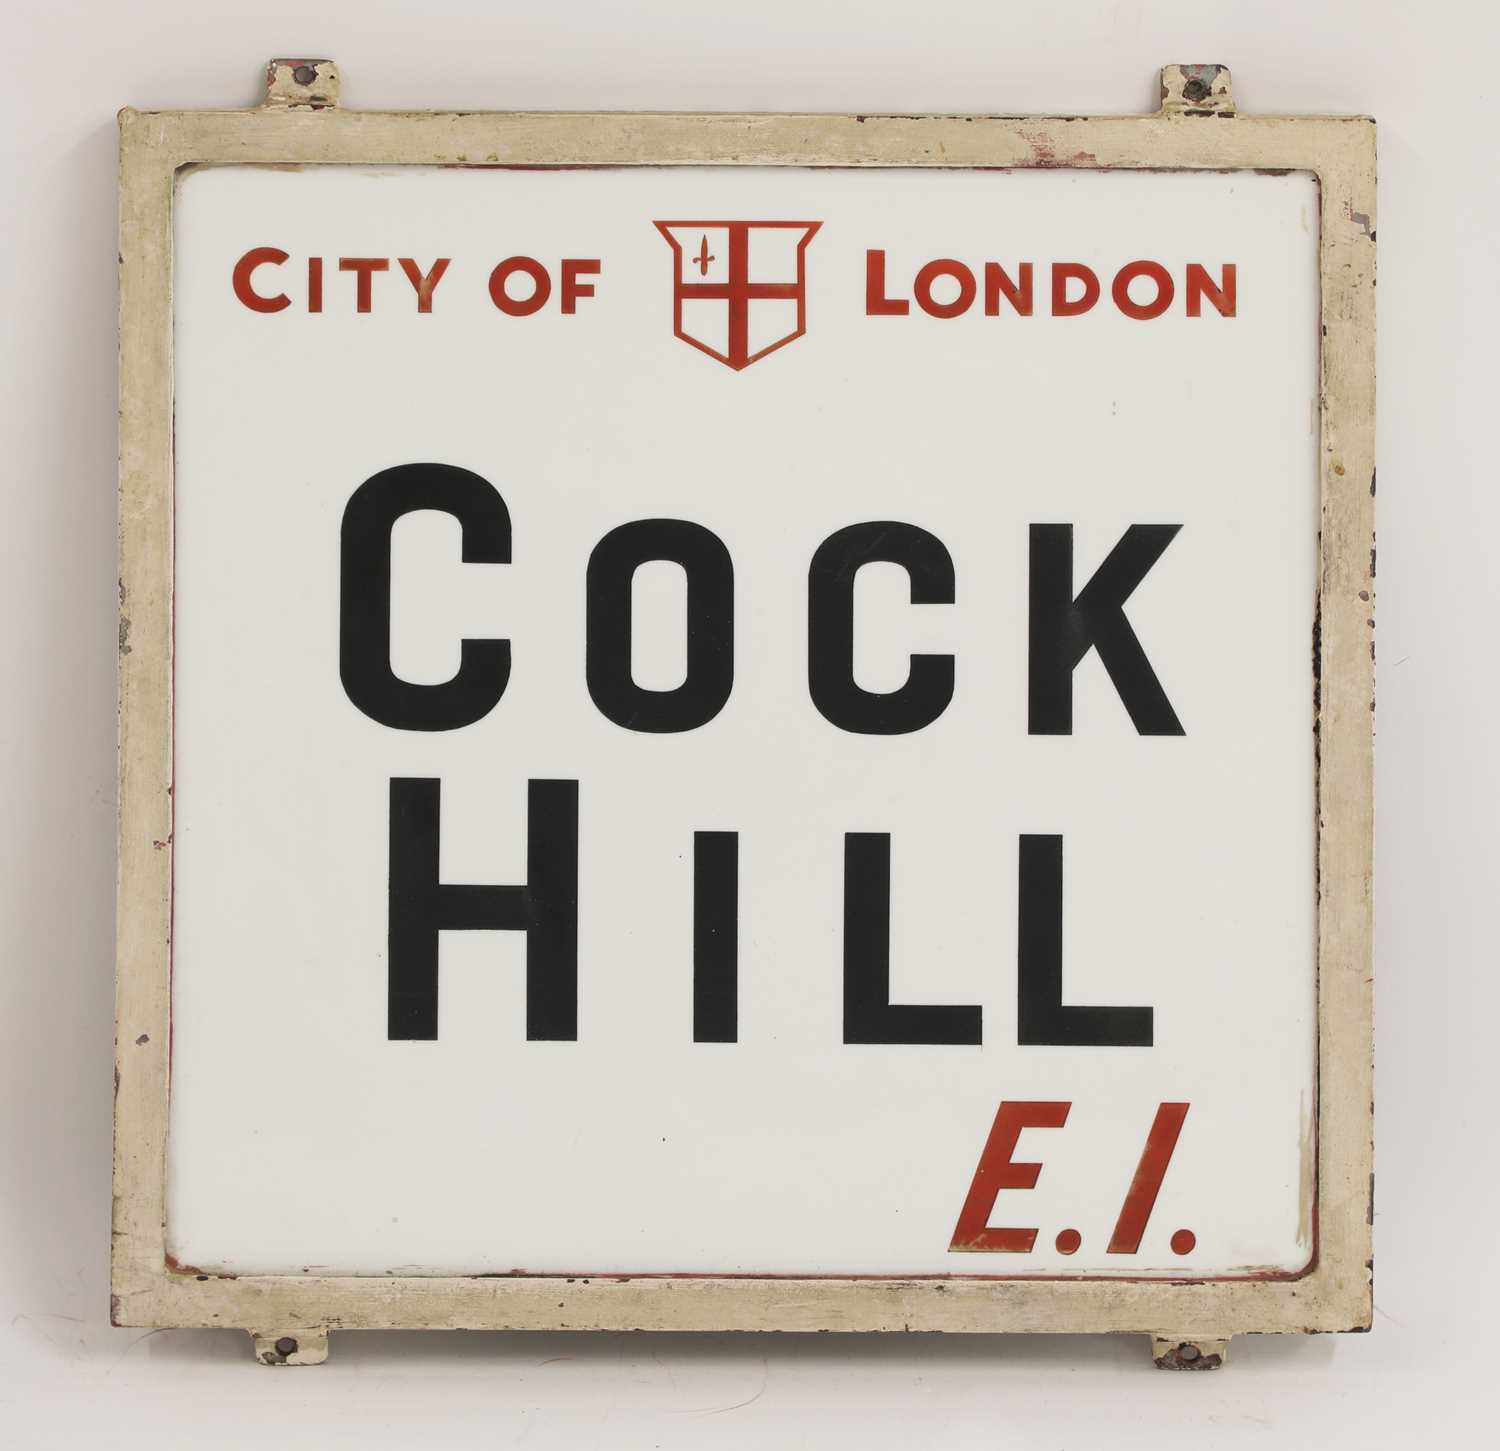 Lot 19 - 'COCK HILL'